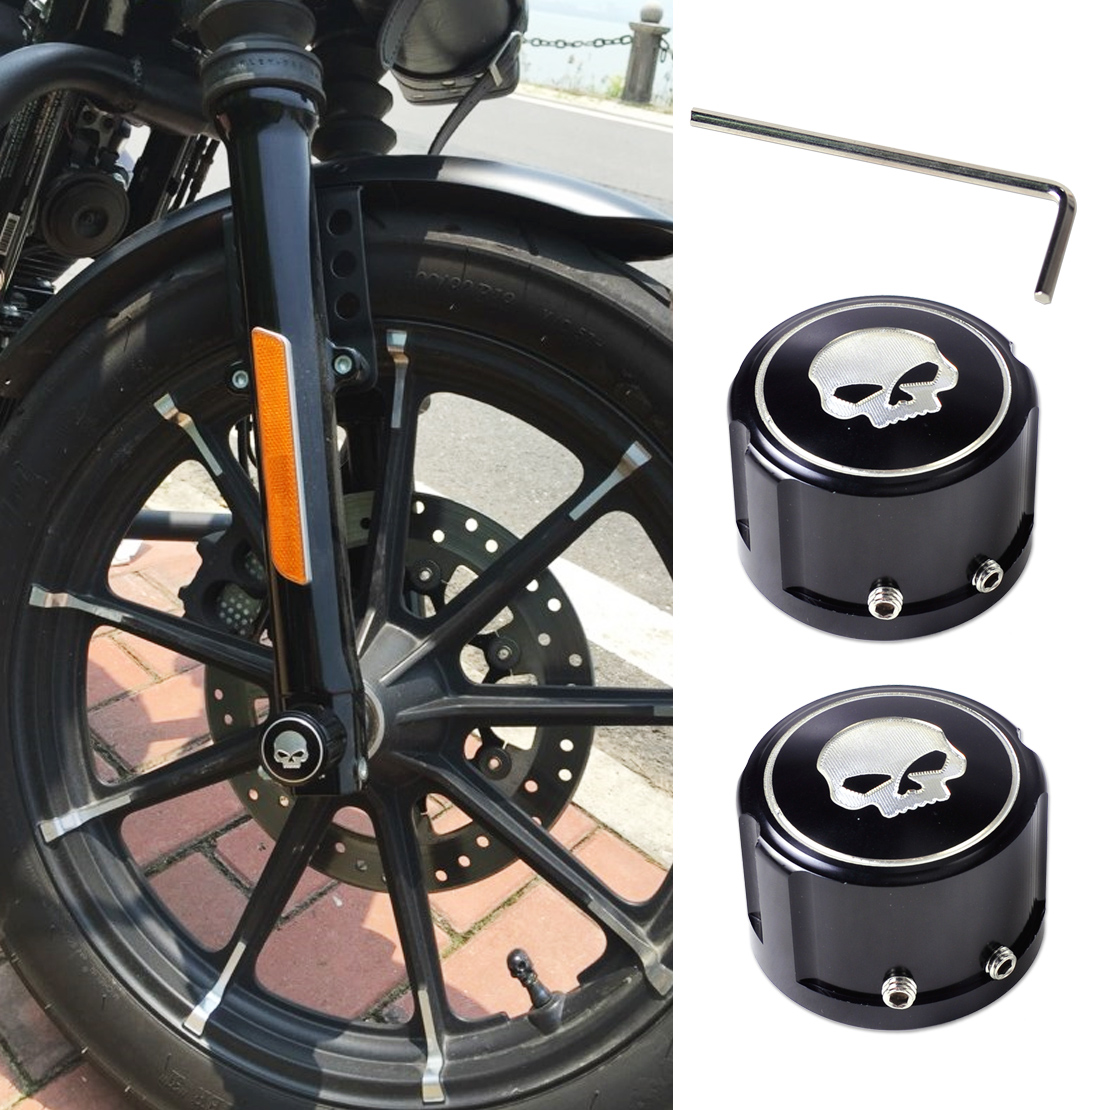 DWCX 2pcs Black Skull Aluminum Front Axle Nut Cover Bolt Kit for Harley-Davidson Touring Softail Dyna XG XL VRSC 2008 2009 2010+